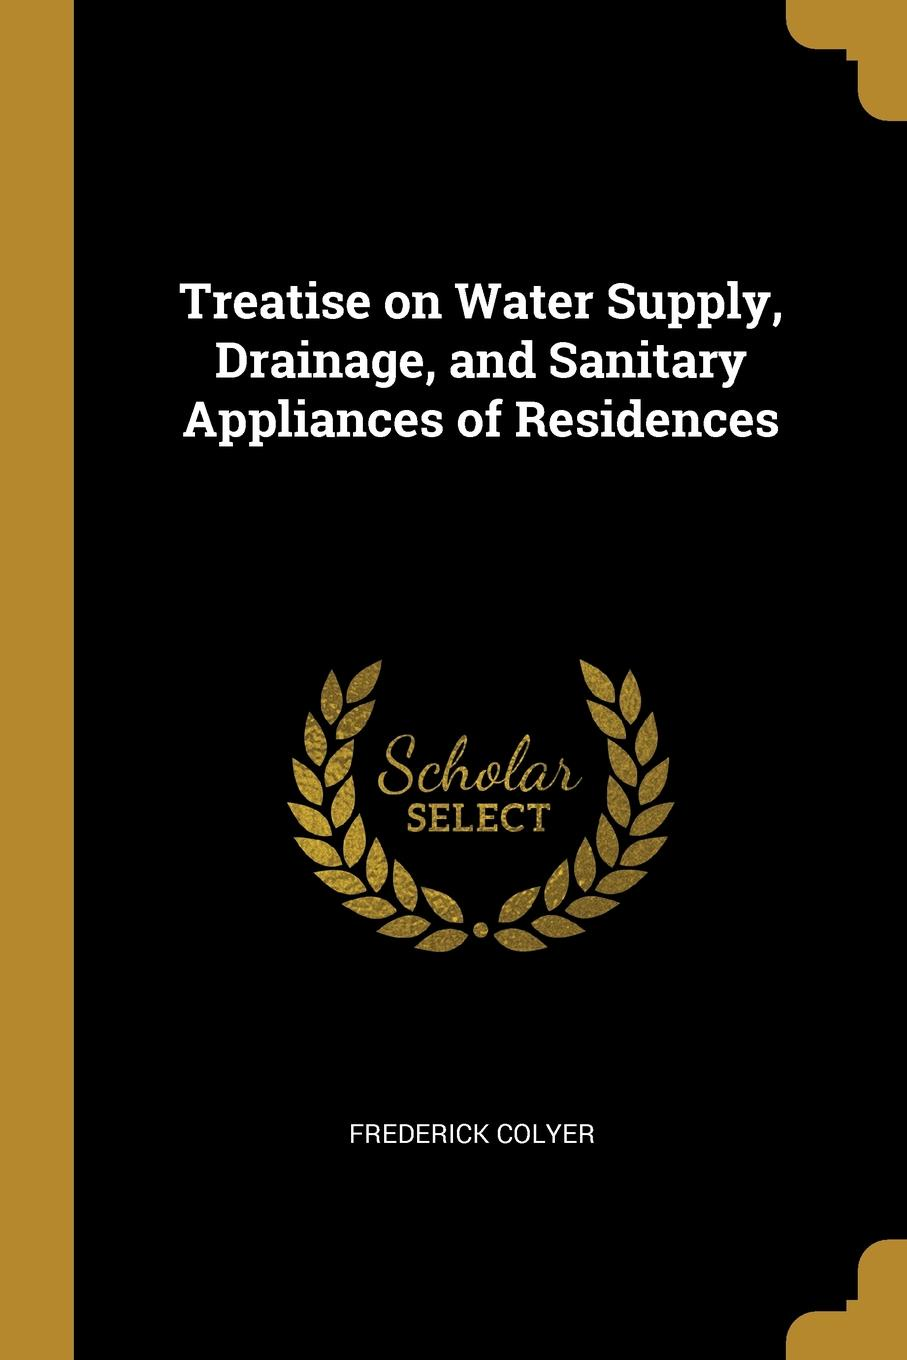 Frederick Colyer. Treatise on Water Supply, Drainage, and Sanitary Appliances of Residences